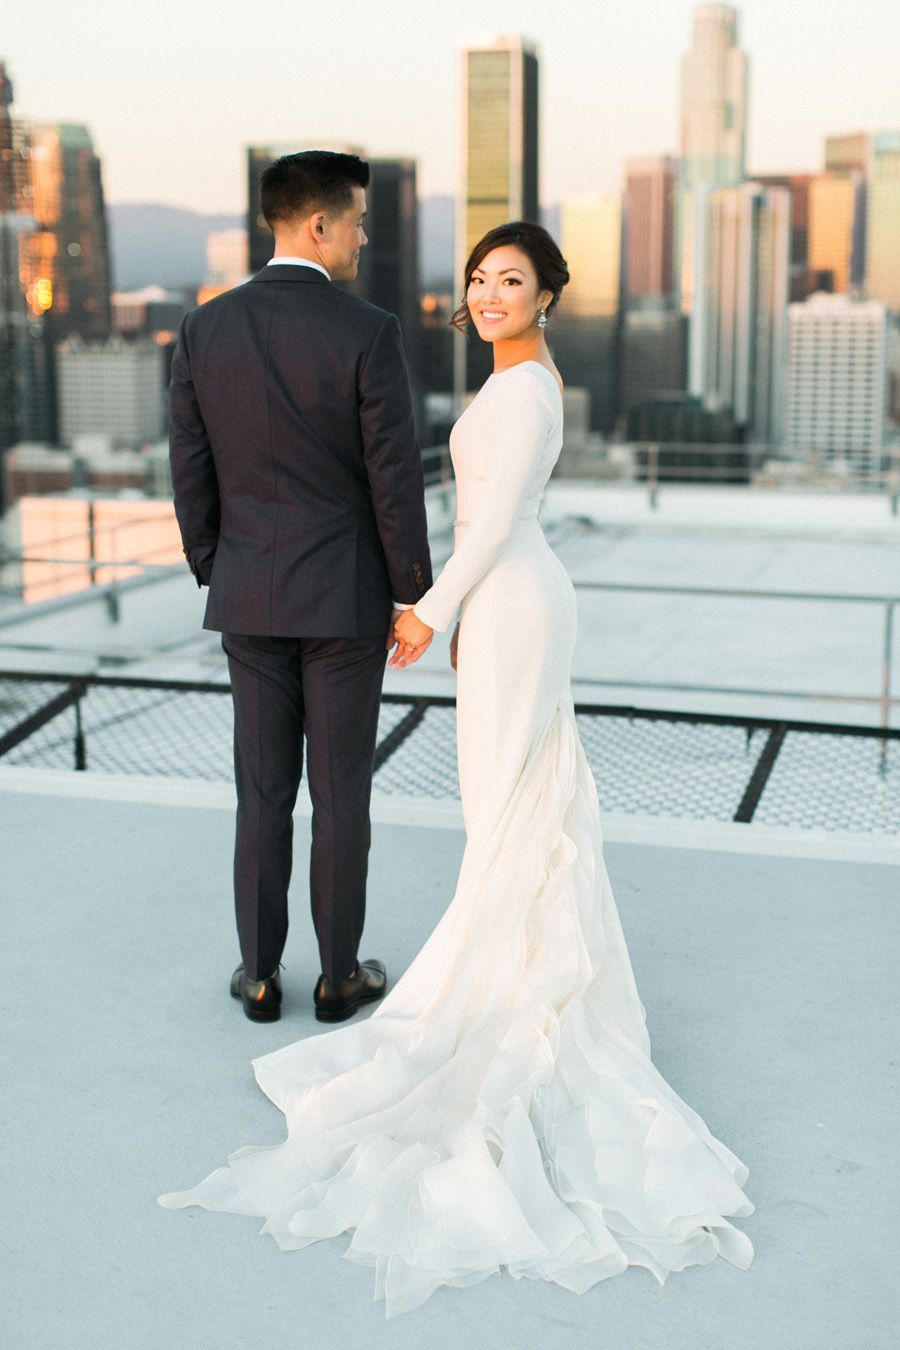 Downtown L.A. Wedding with Rooftop Views | Boda, Vestidos de novia y ...